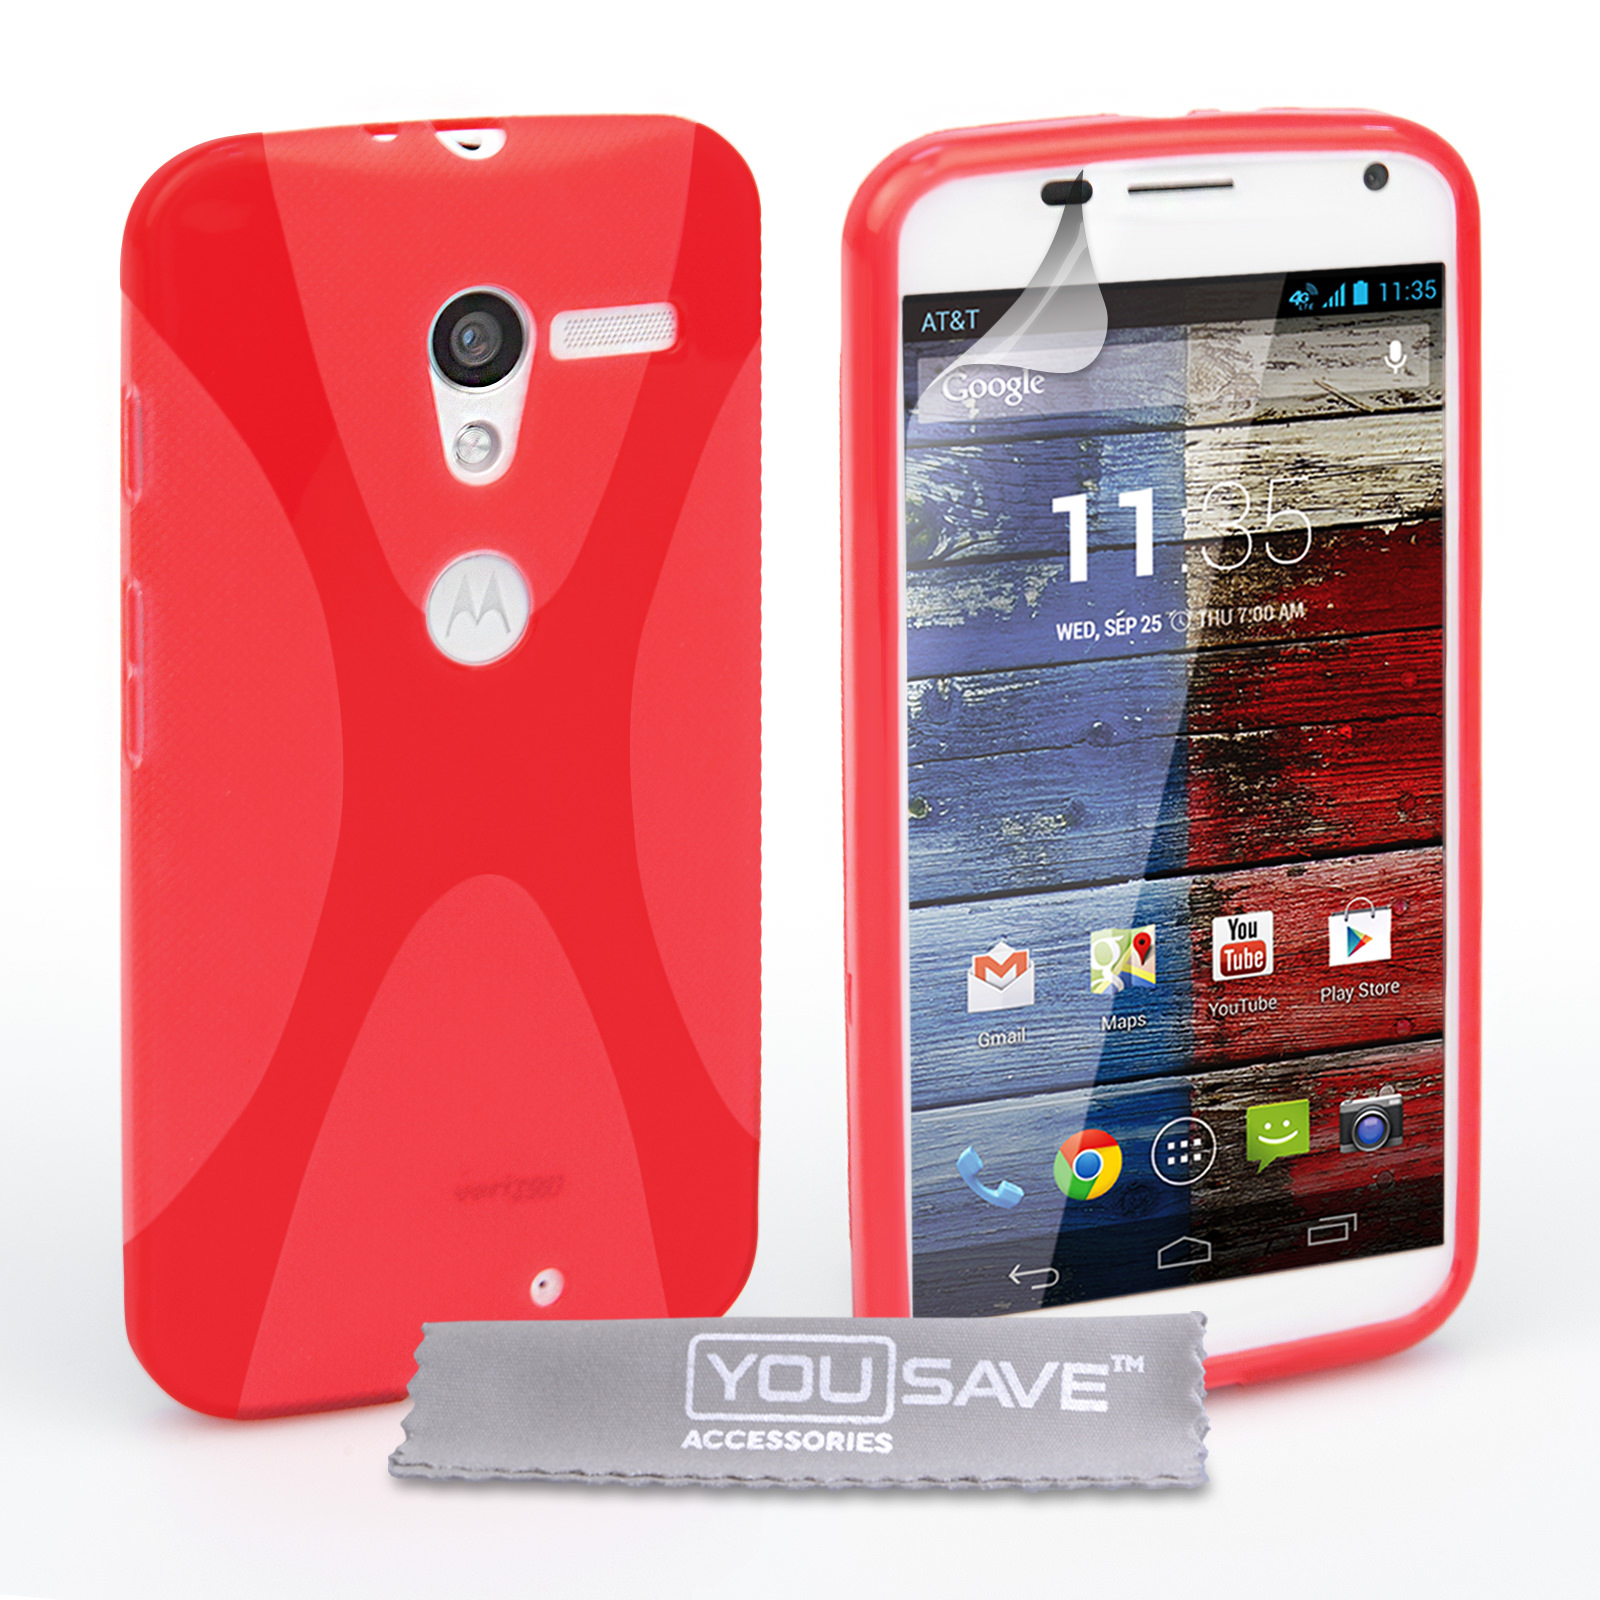 YouSave Accessories Motorola Moto X Silicone Gel X-Line Case - Red